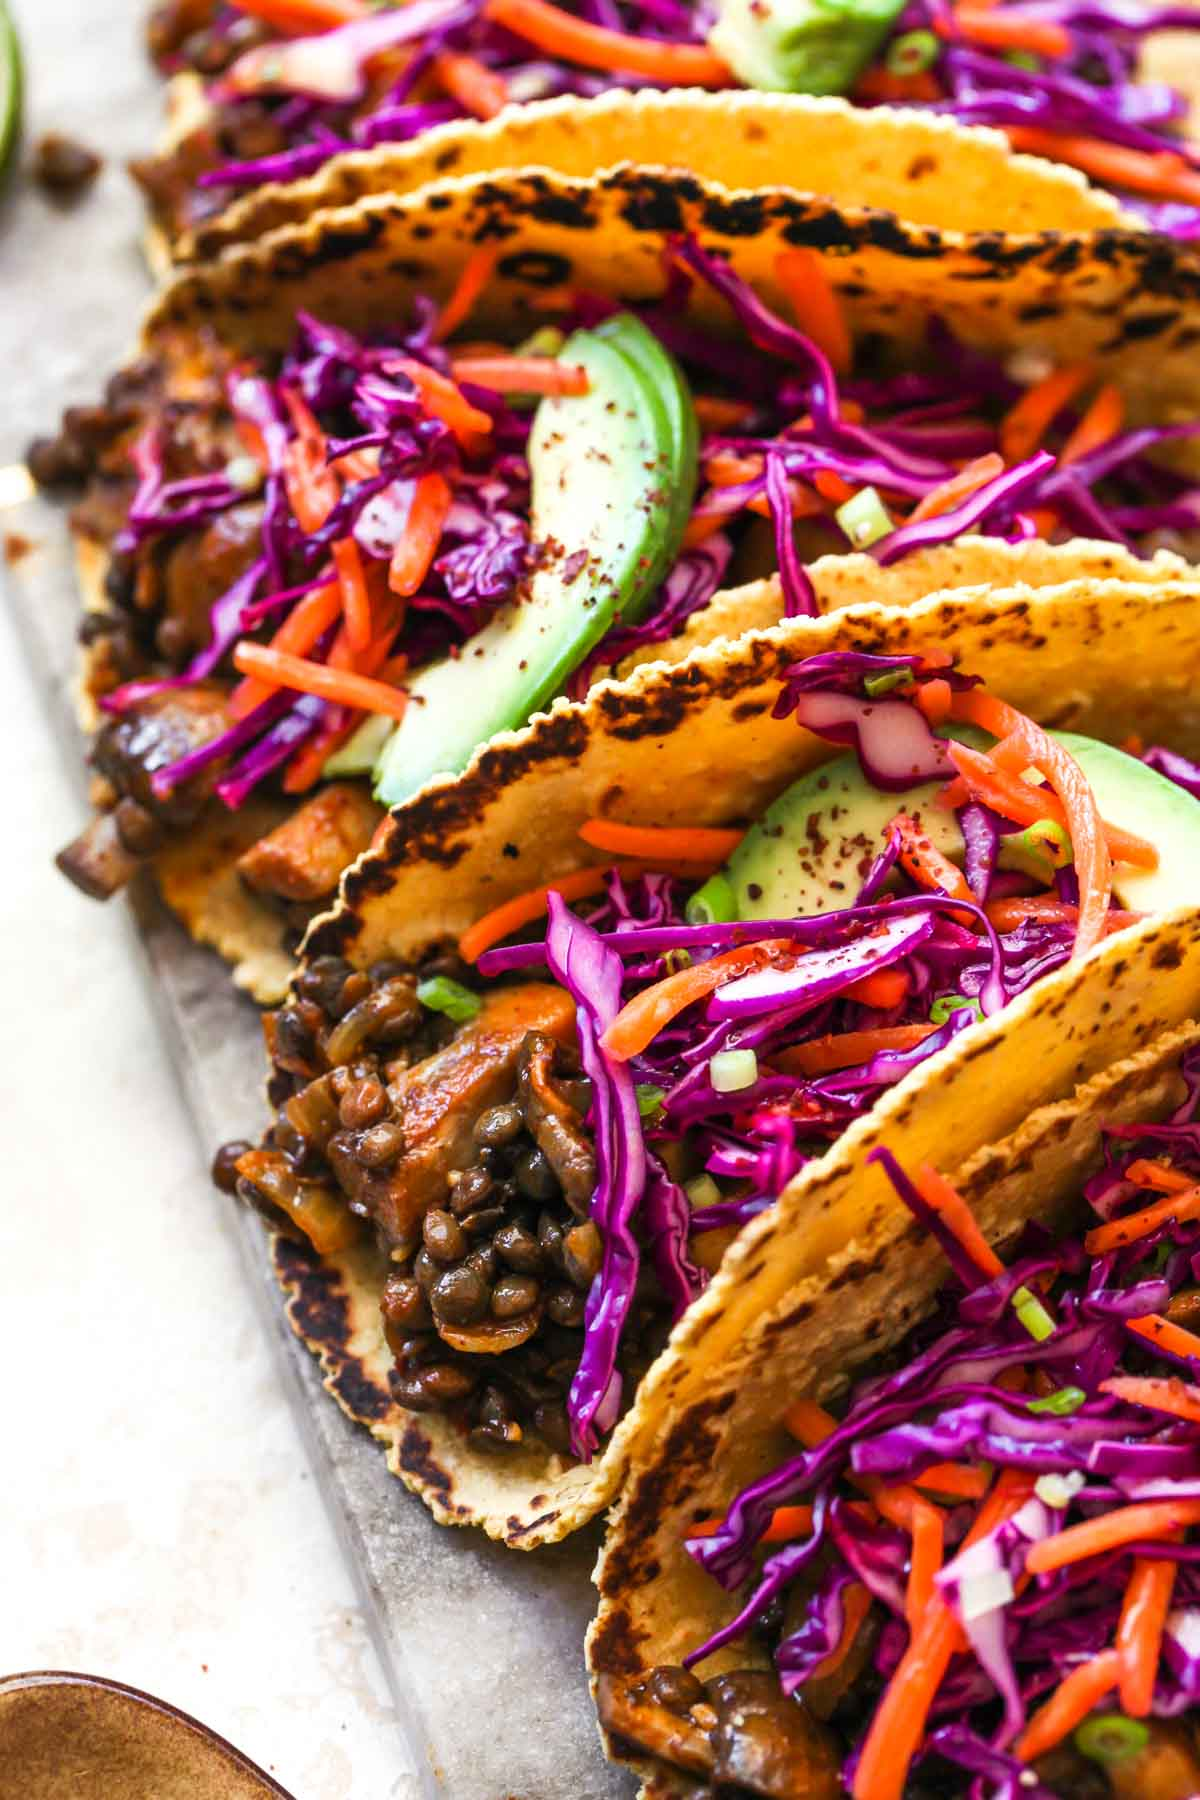 Vegetarian taco filling topped with cabbage slaw and sliced avocado